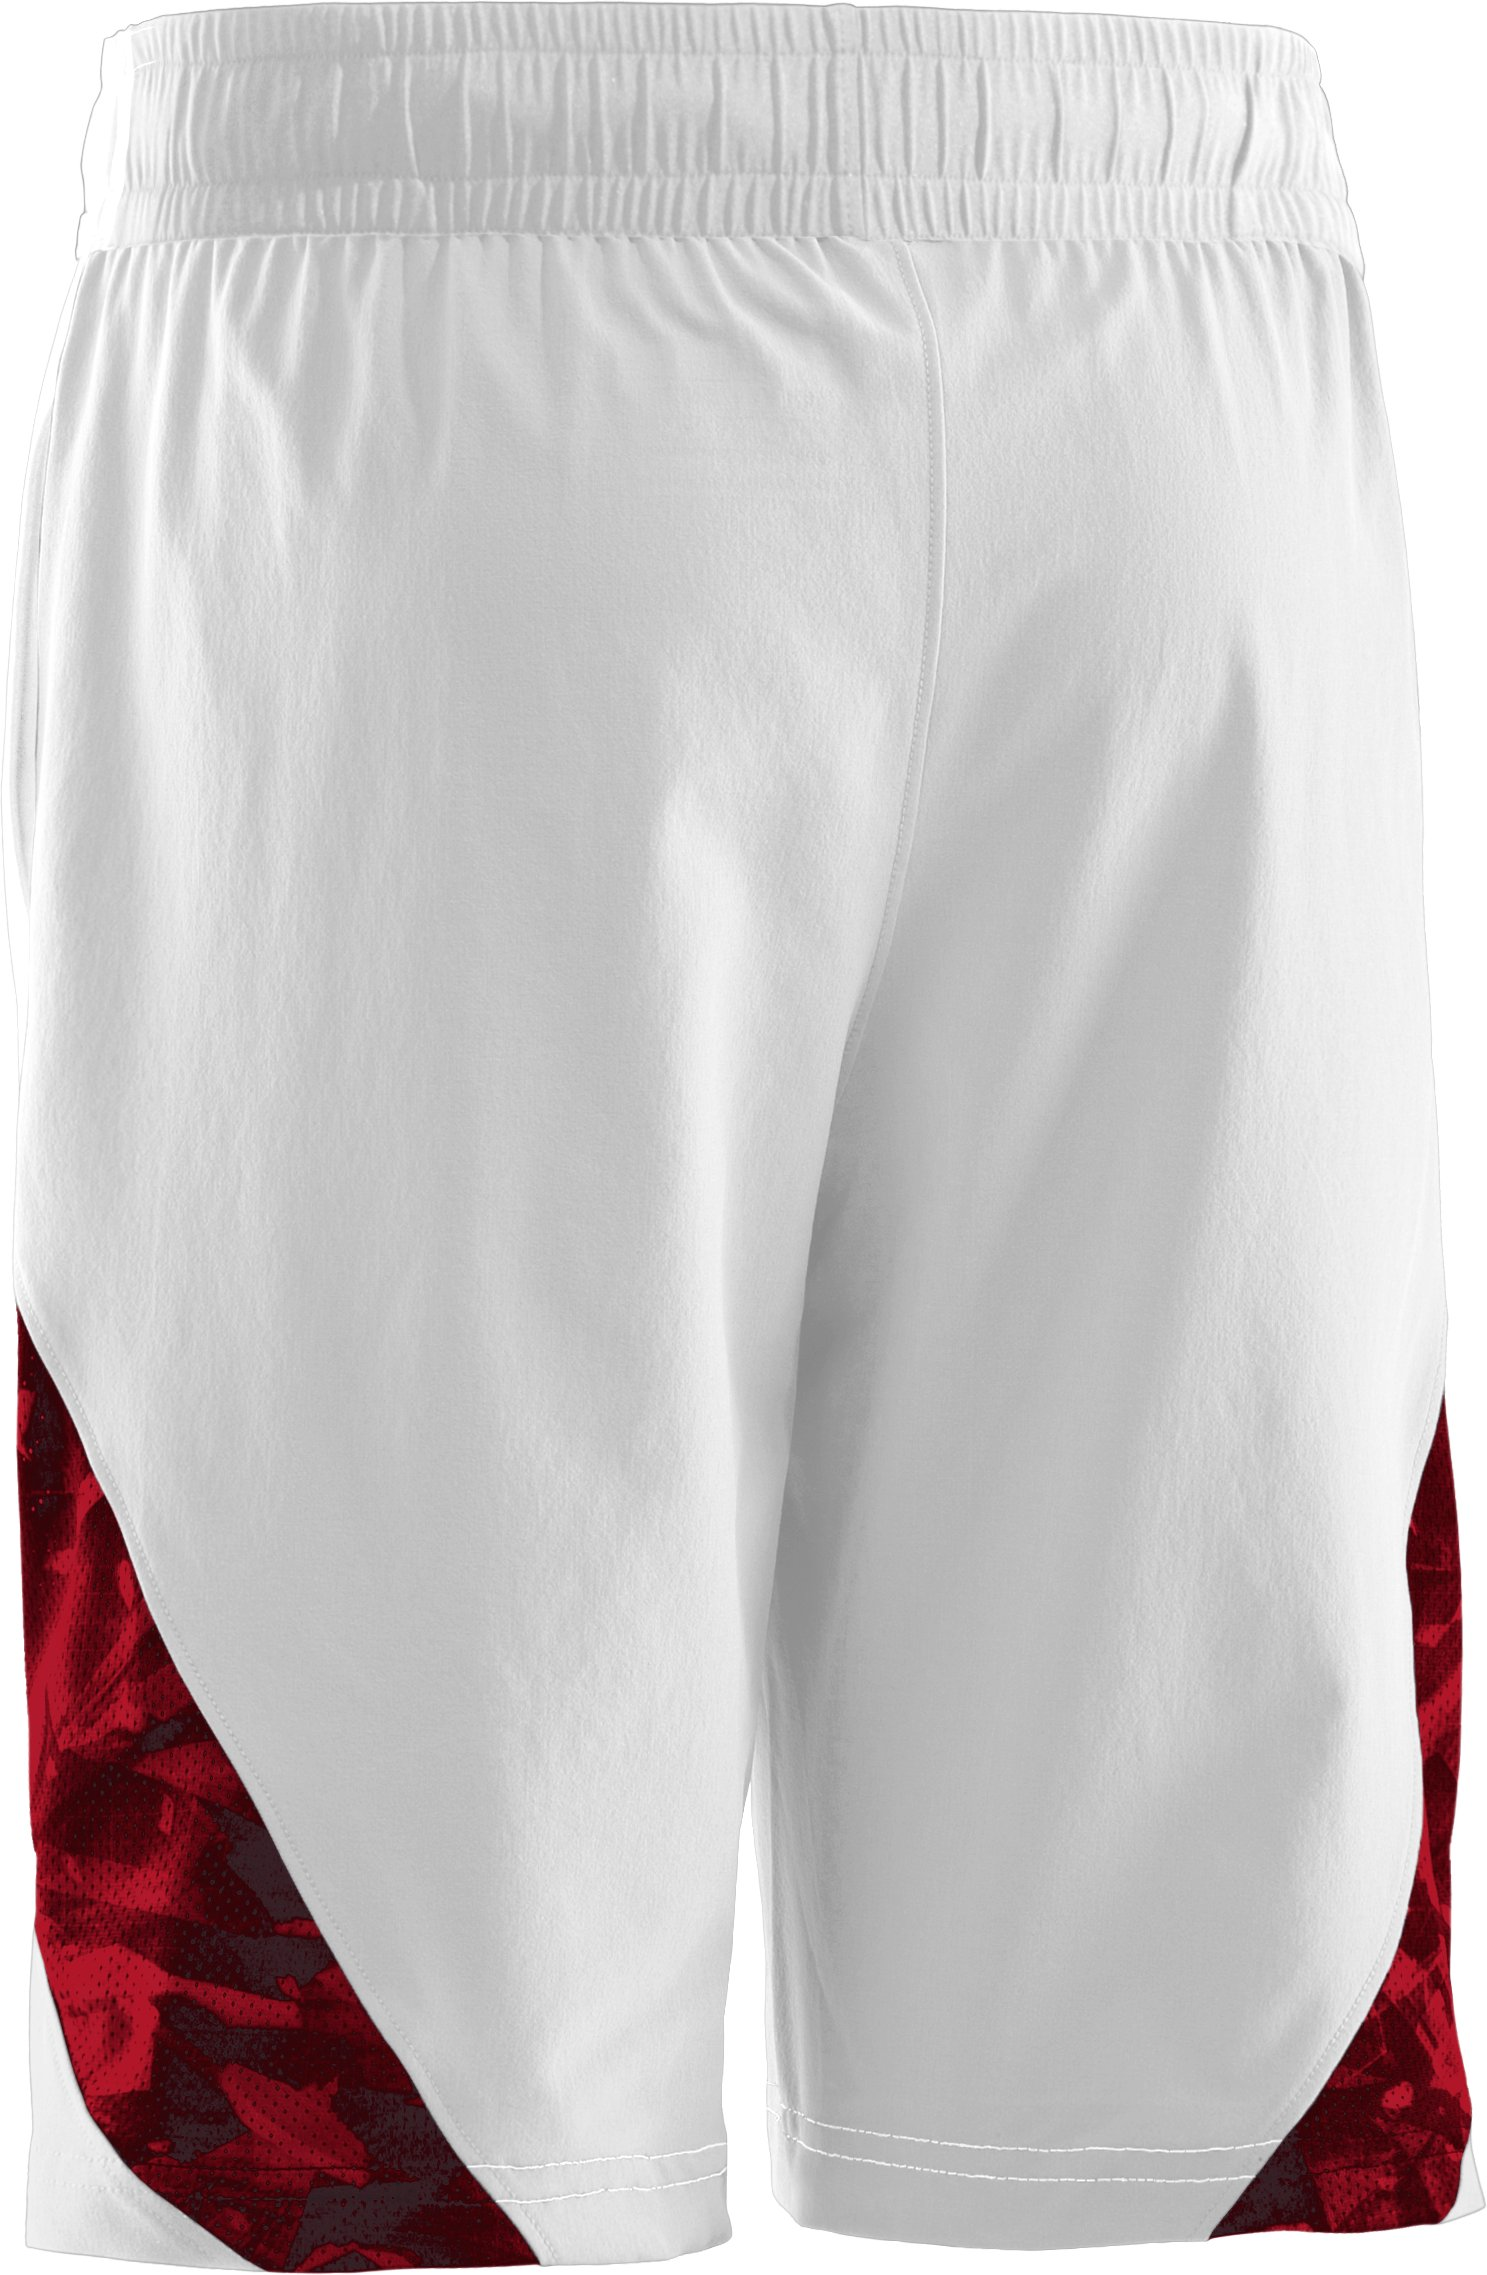 Boys' NFL Combine Authentic Shorts, White